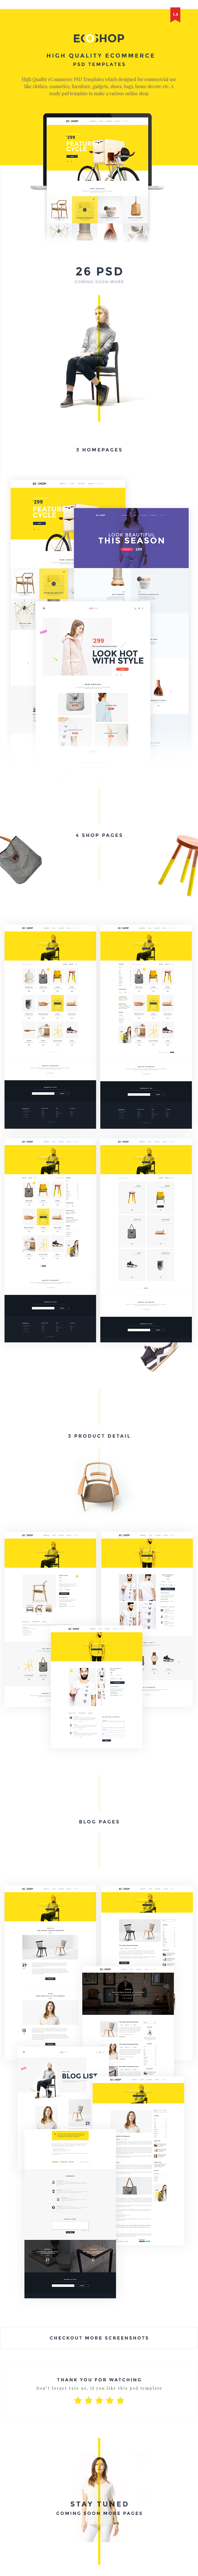 ECOSHOP - Multipurpose eCommerce PSD Template - 6